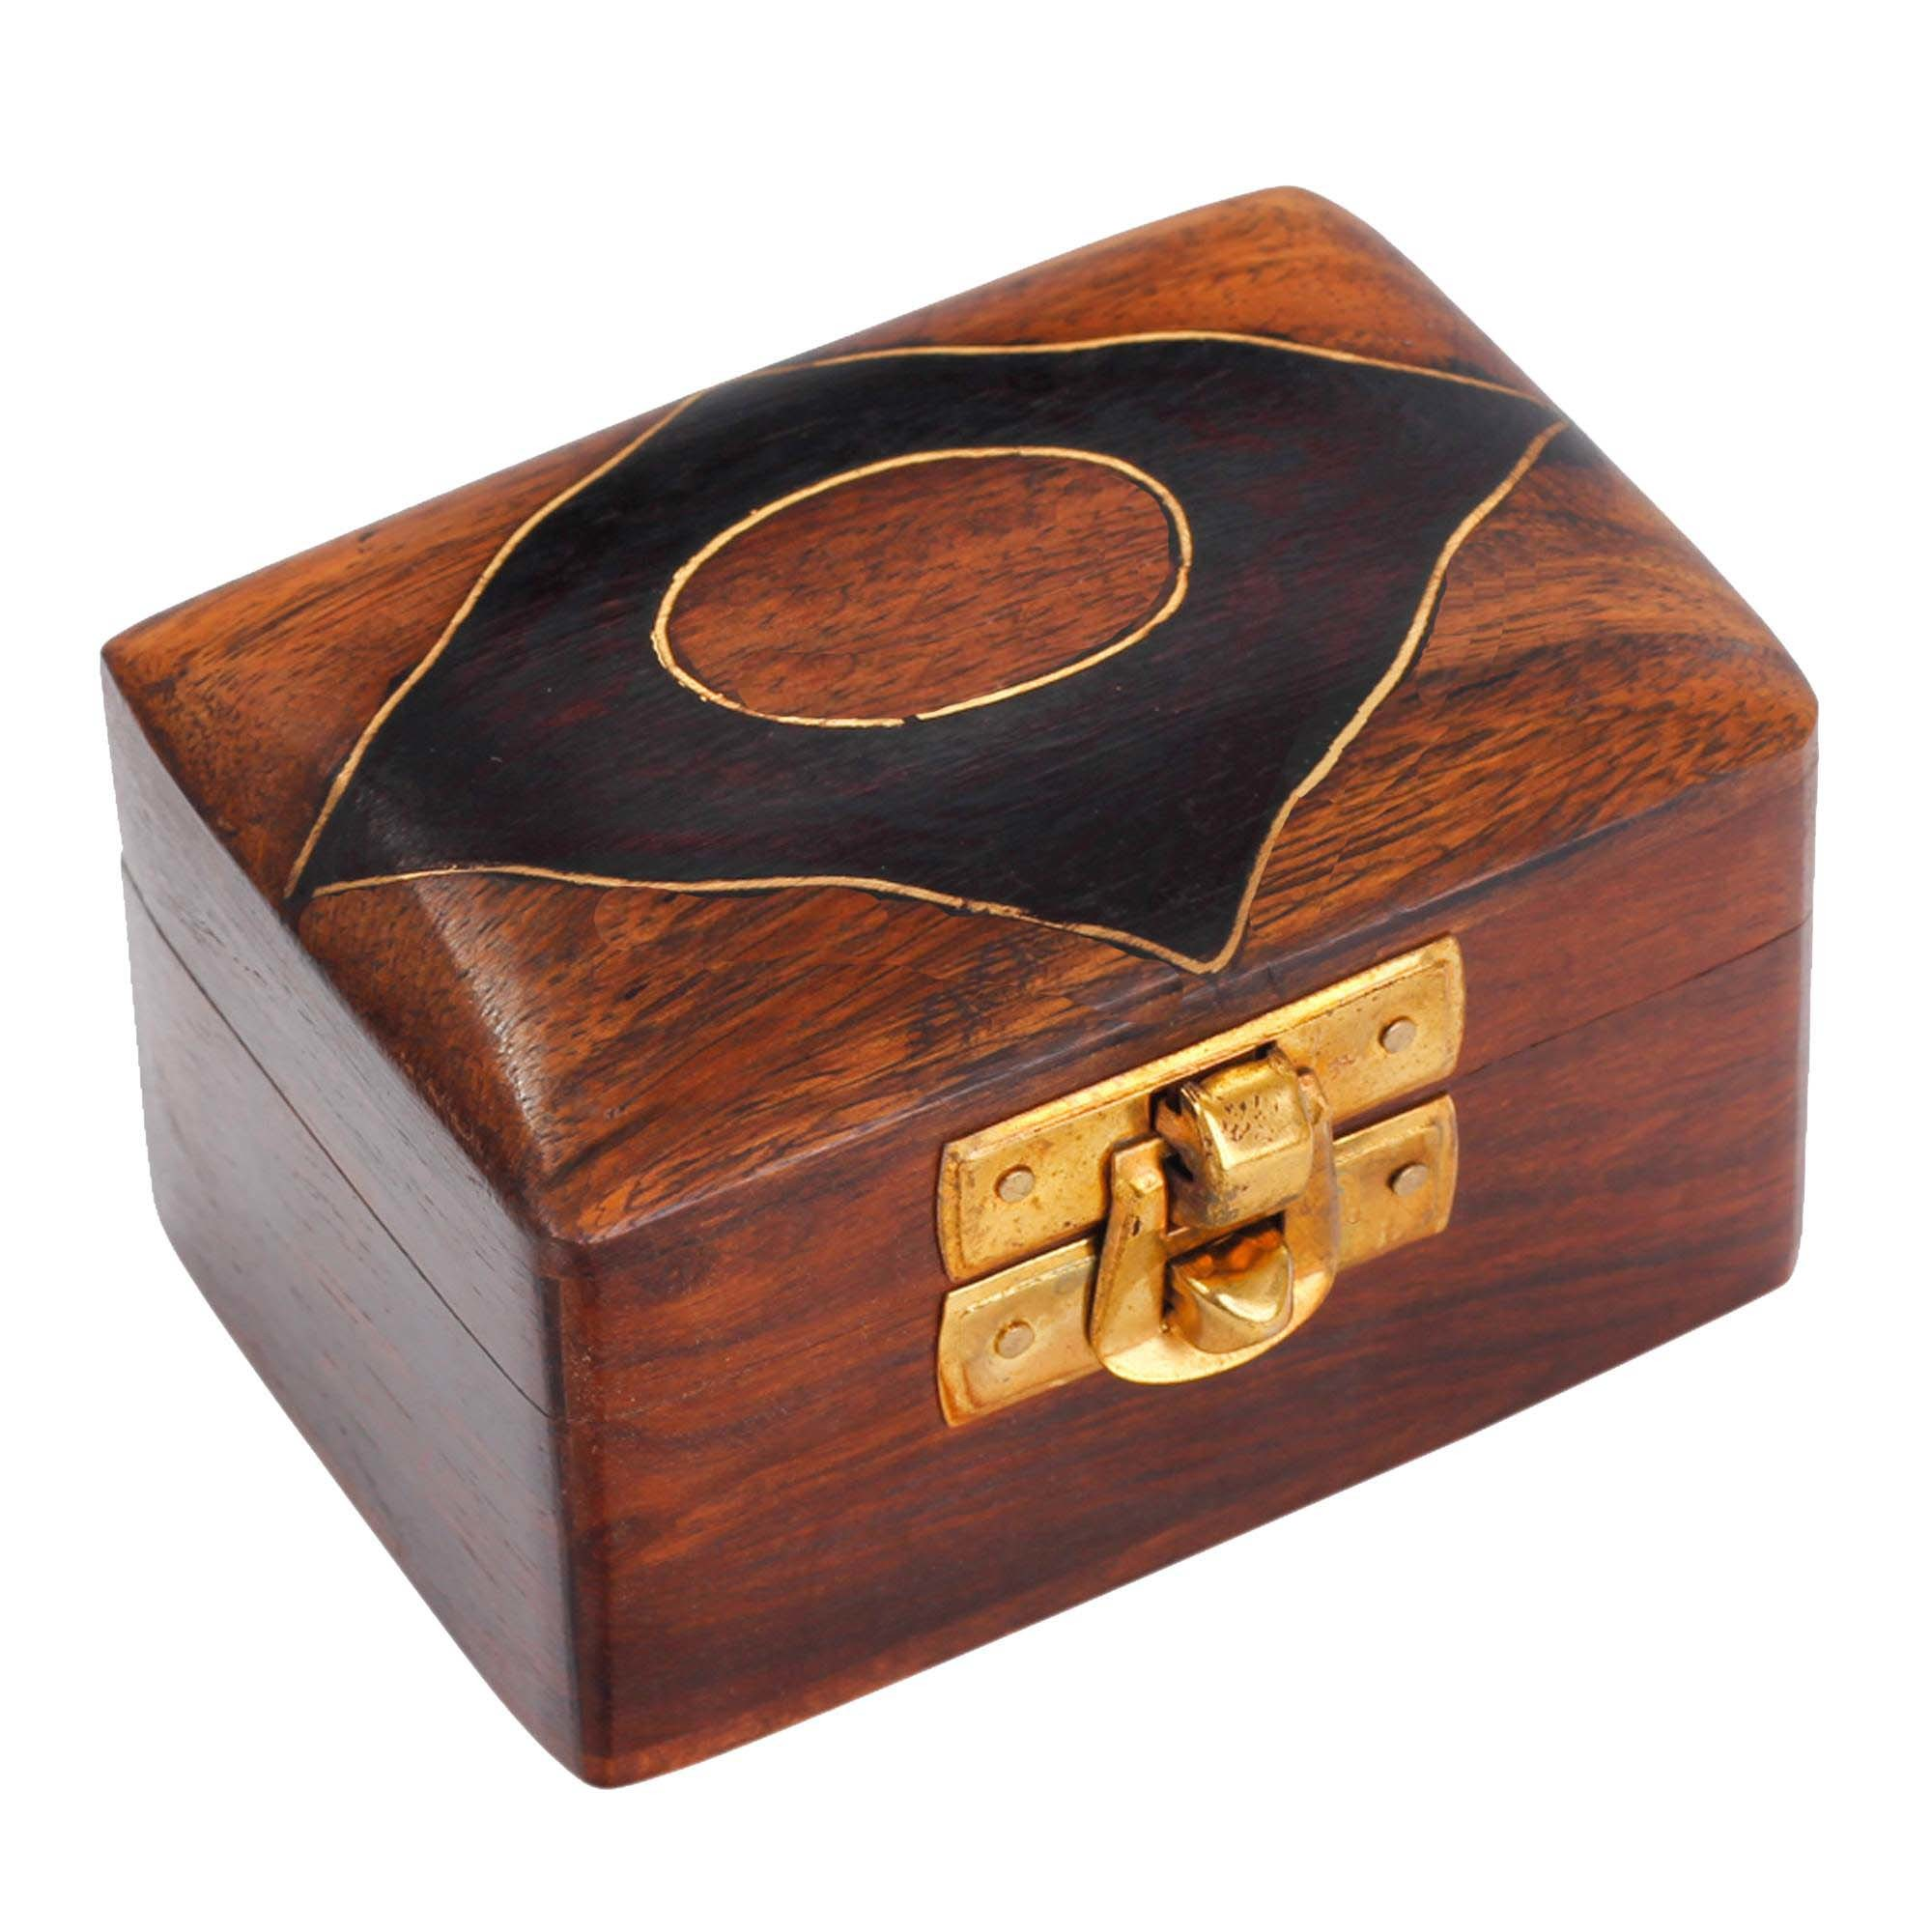 Handmade Wooden Jewellery Box